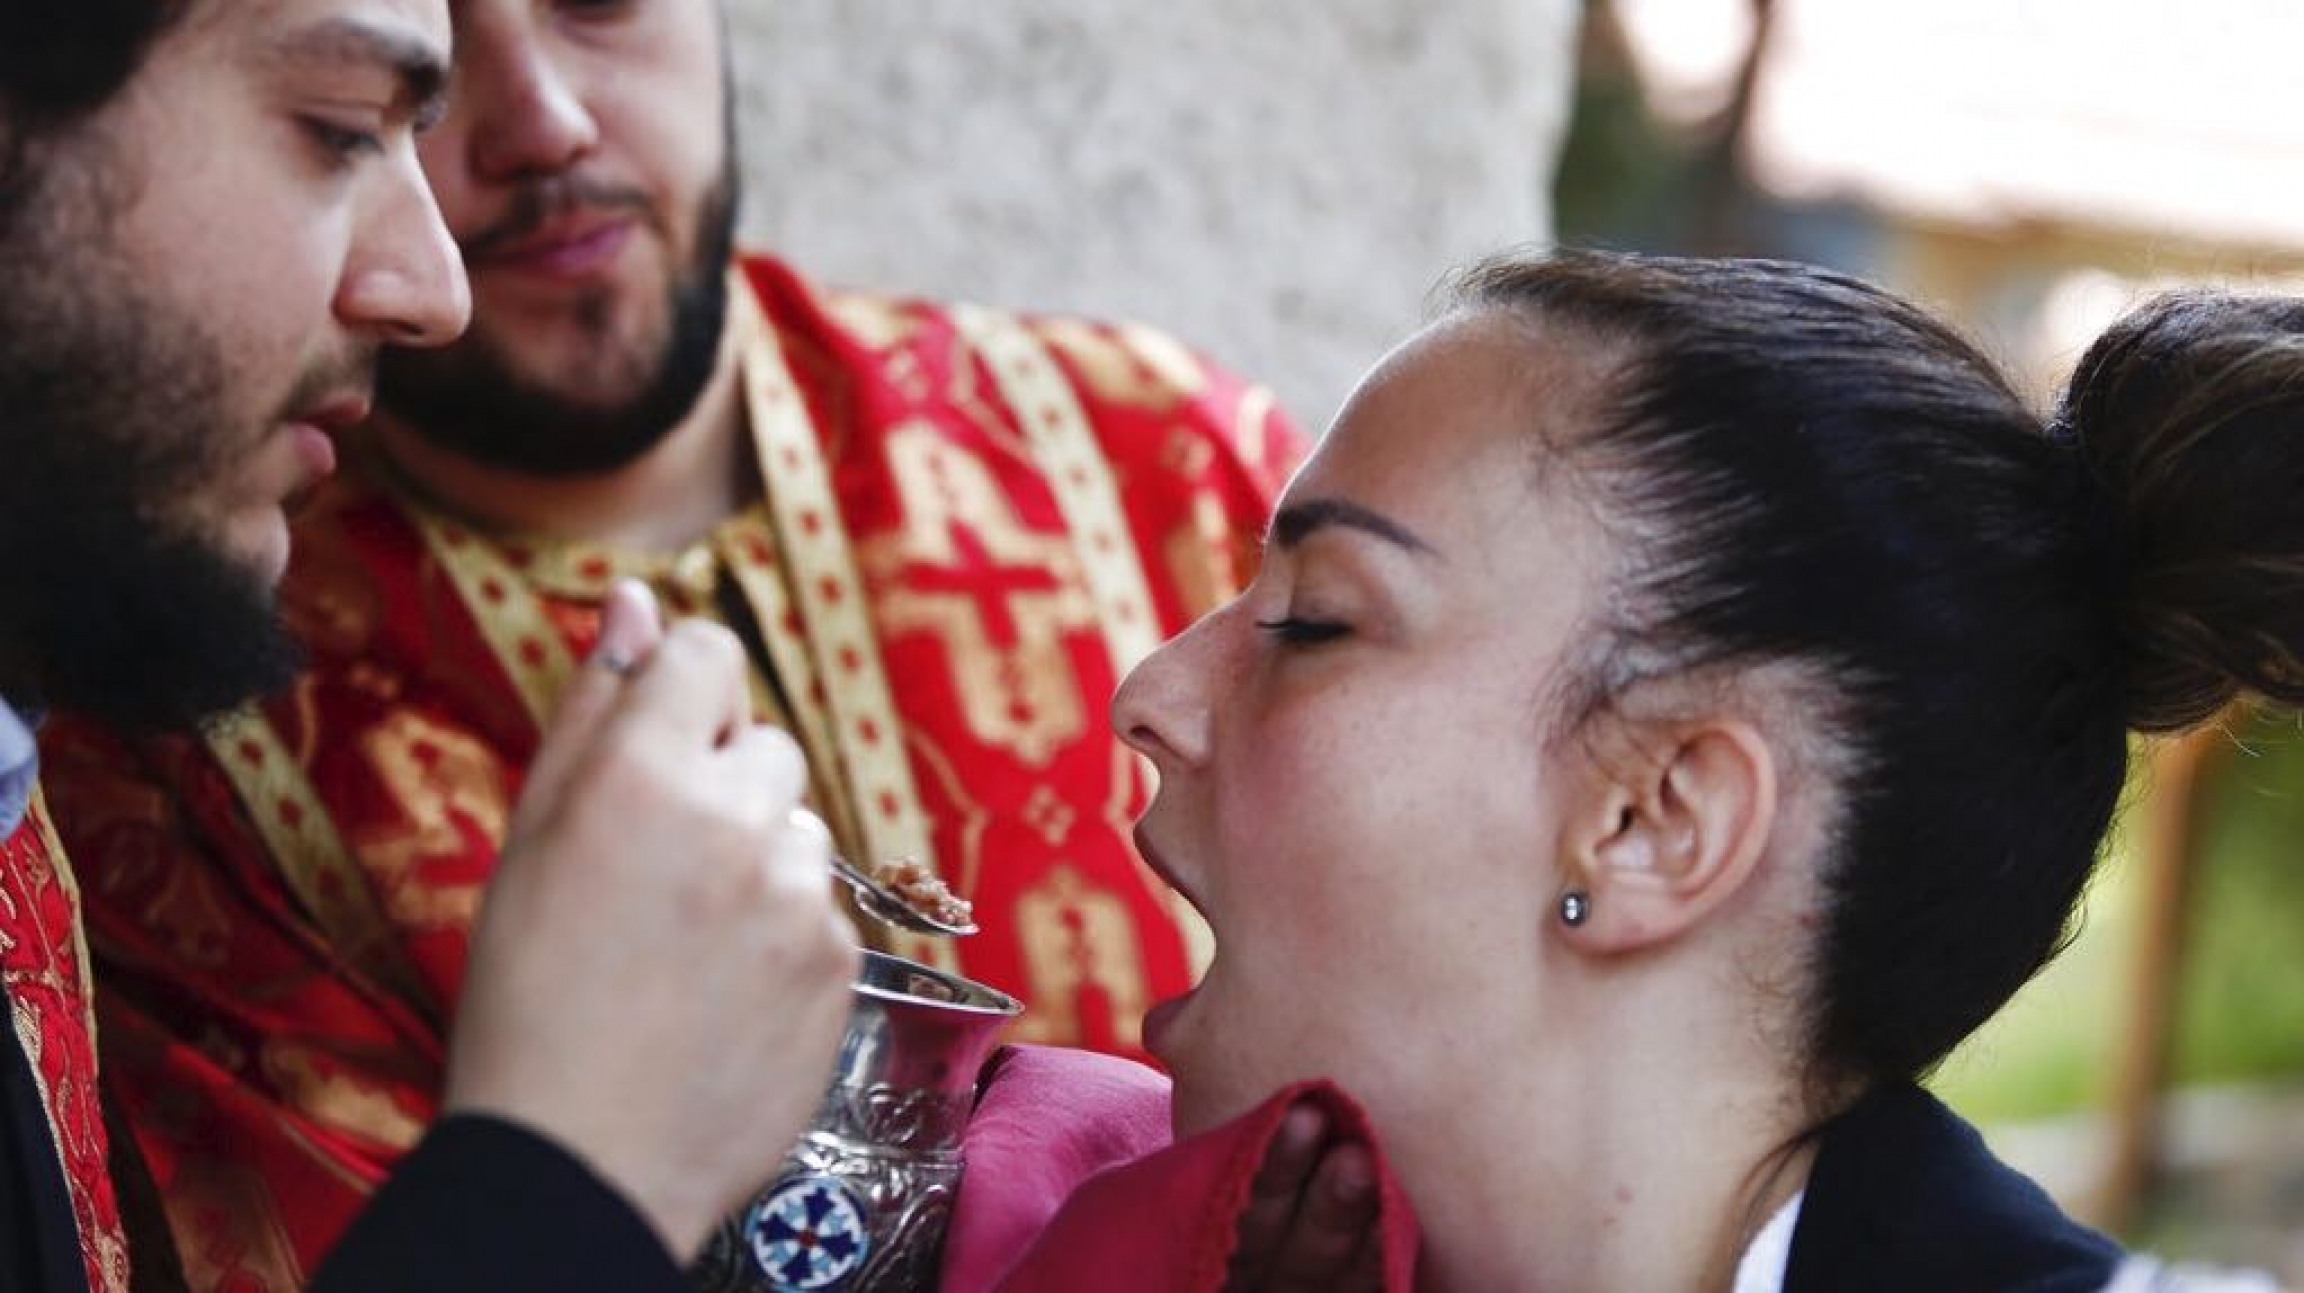 In this Sunday, May 24, 2020, photo, a Greek Orthodox priest distributes Holy Communion during Sunday Mass at a church, in the northern city of Thessaloniki, Greece, using a traditional shared spoon. Contrary to science, the Greek Orthodox Church insists